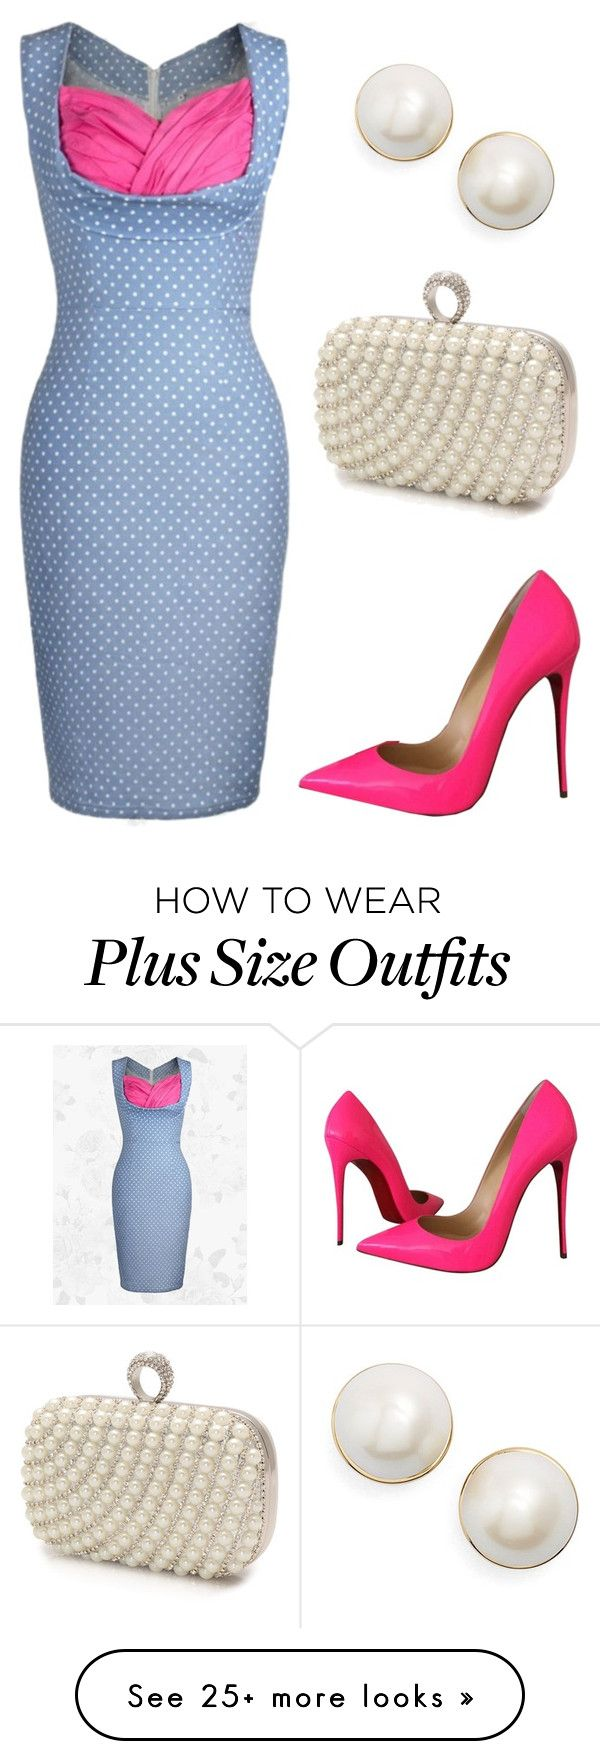 """1st Date"" by sassyladies on Polyvore featuring Christian Louboutin, Mascara and Kate Spade"